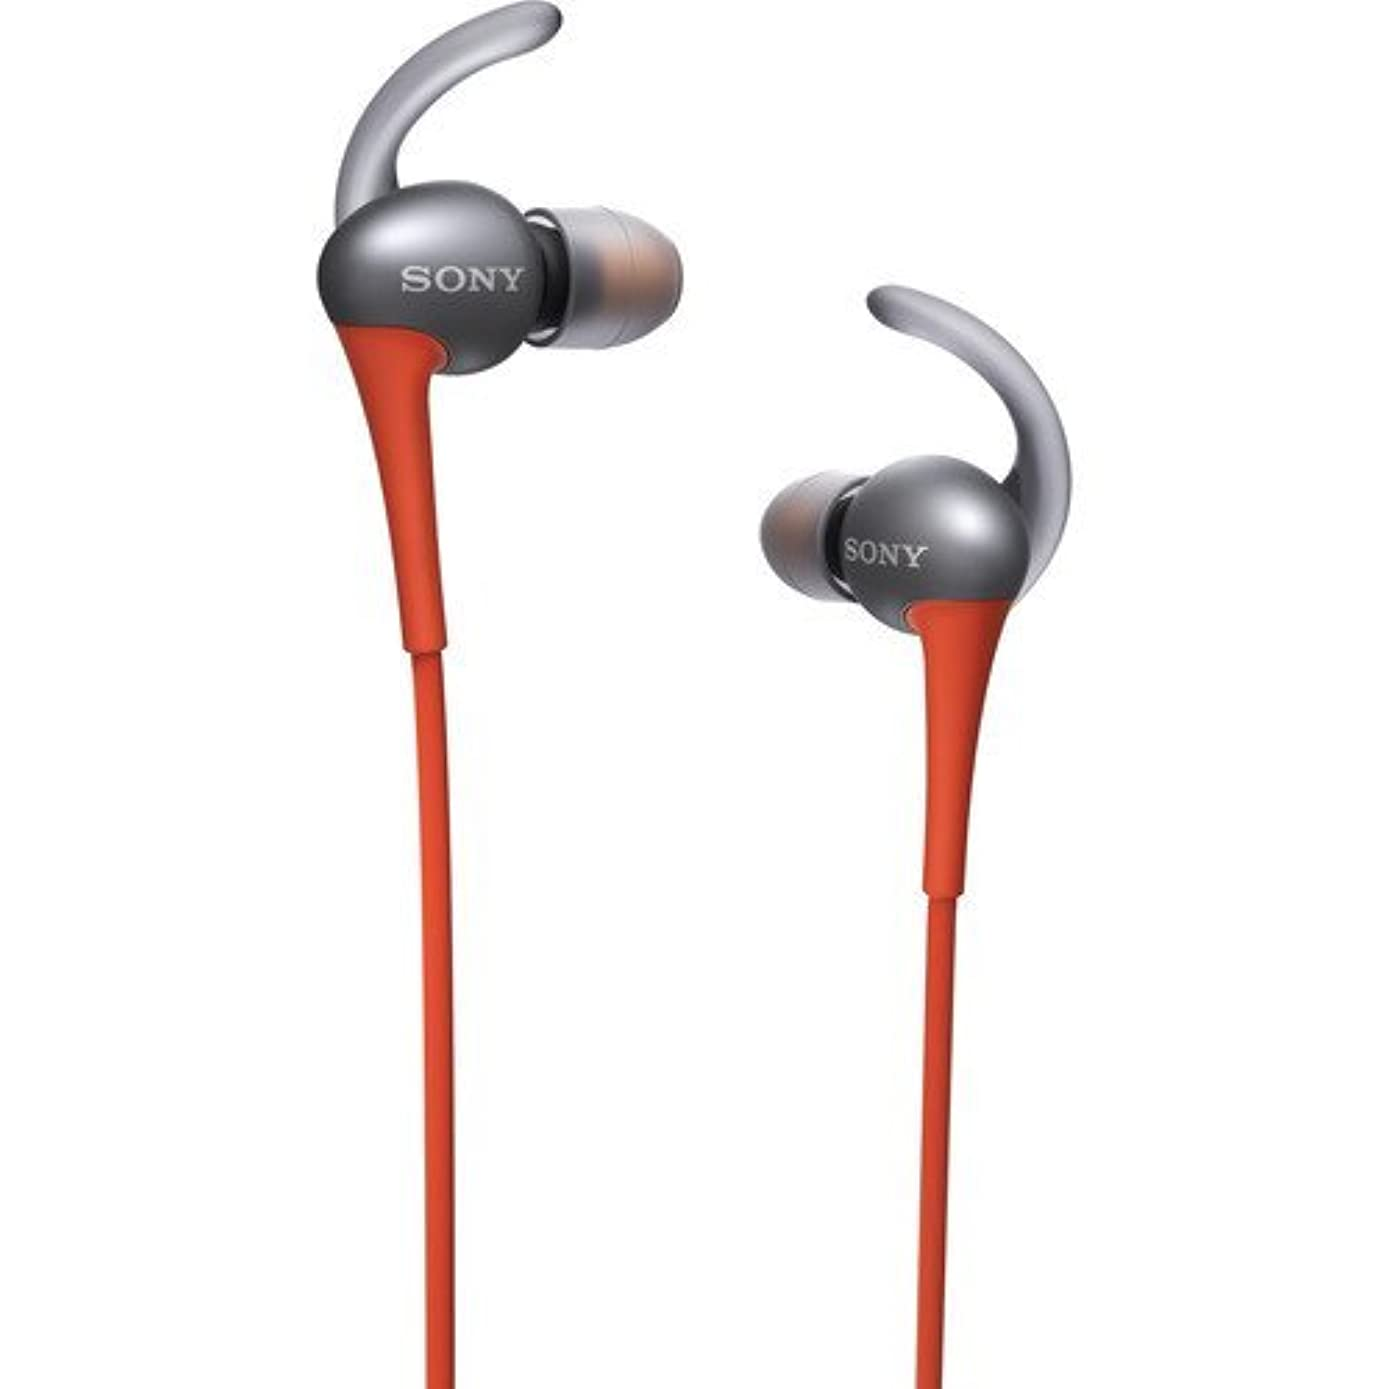 Sony Premium Active Series Lightweight Water-Resistant Extra Bass Noise-Cancelling Earbud Headphones with in-line Microphone and Remote for Apple/Android Smartphone (Orange)